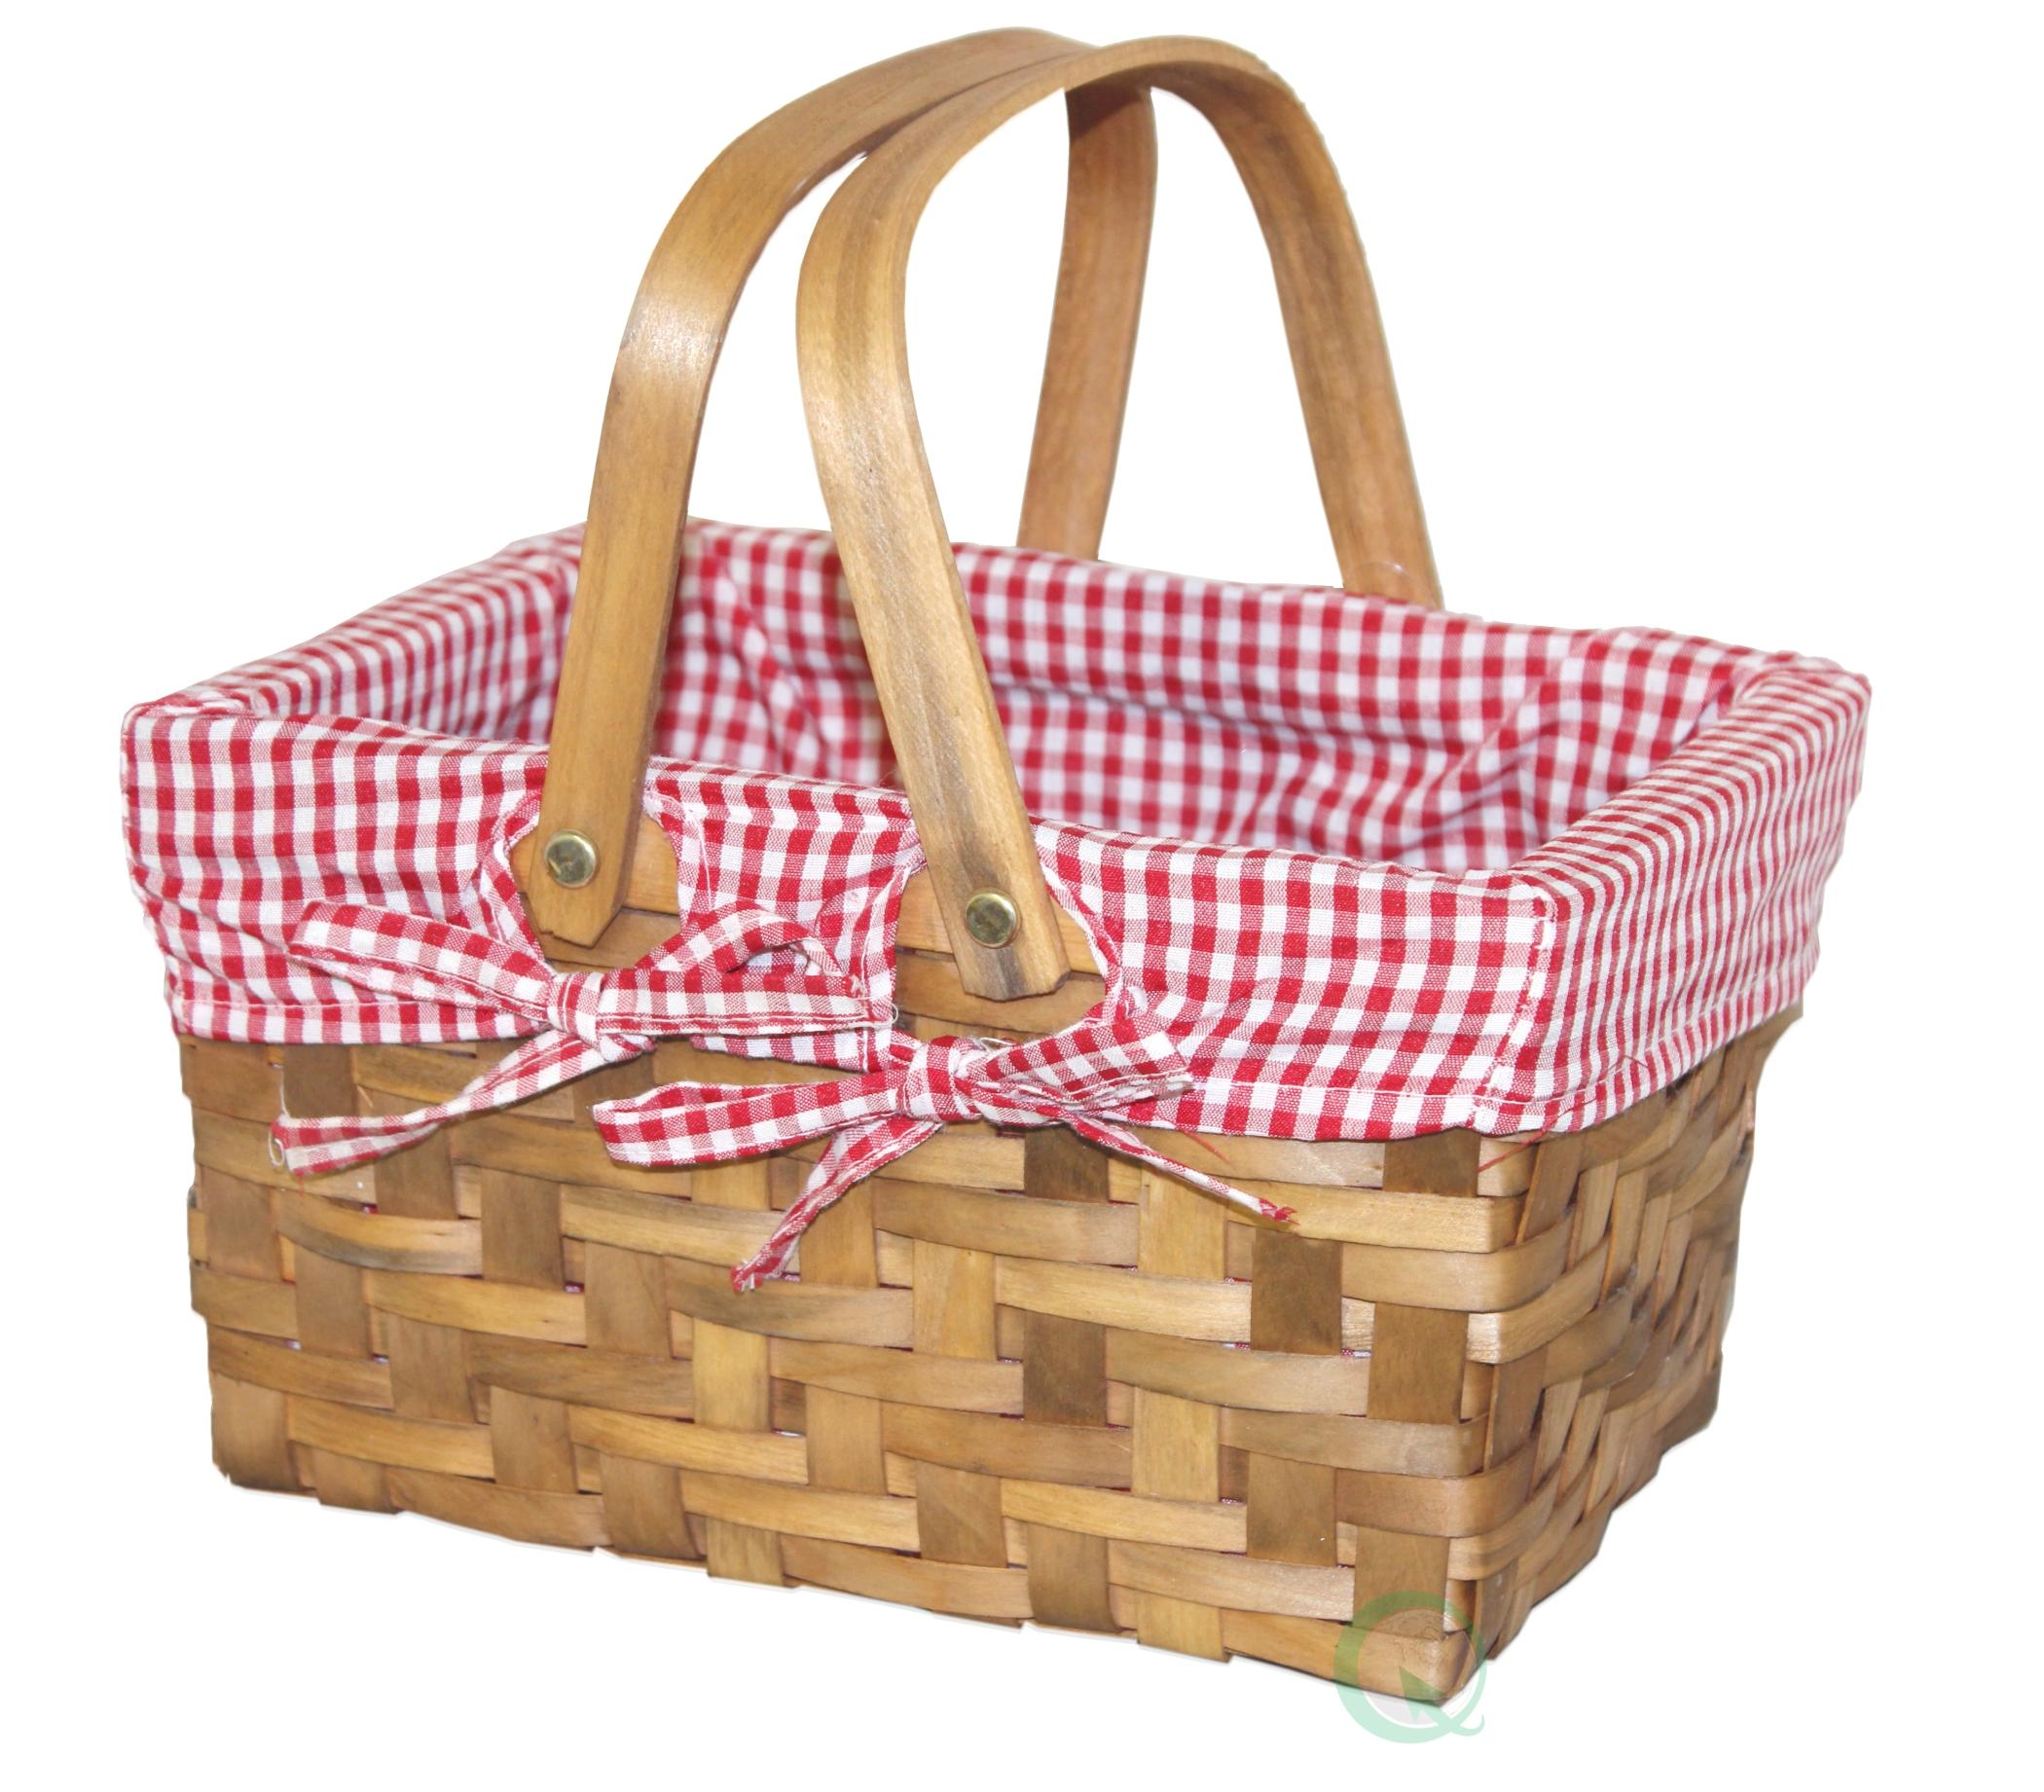 amazon com vintiquewise tm rectangular basket lined with gingham